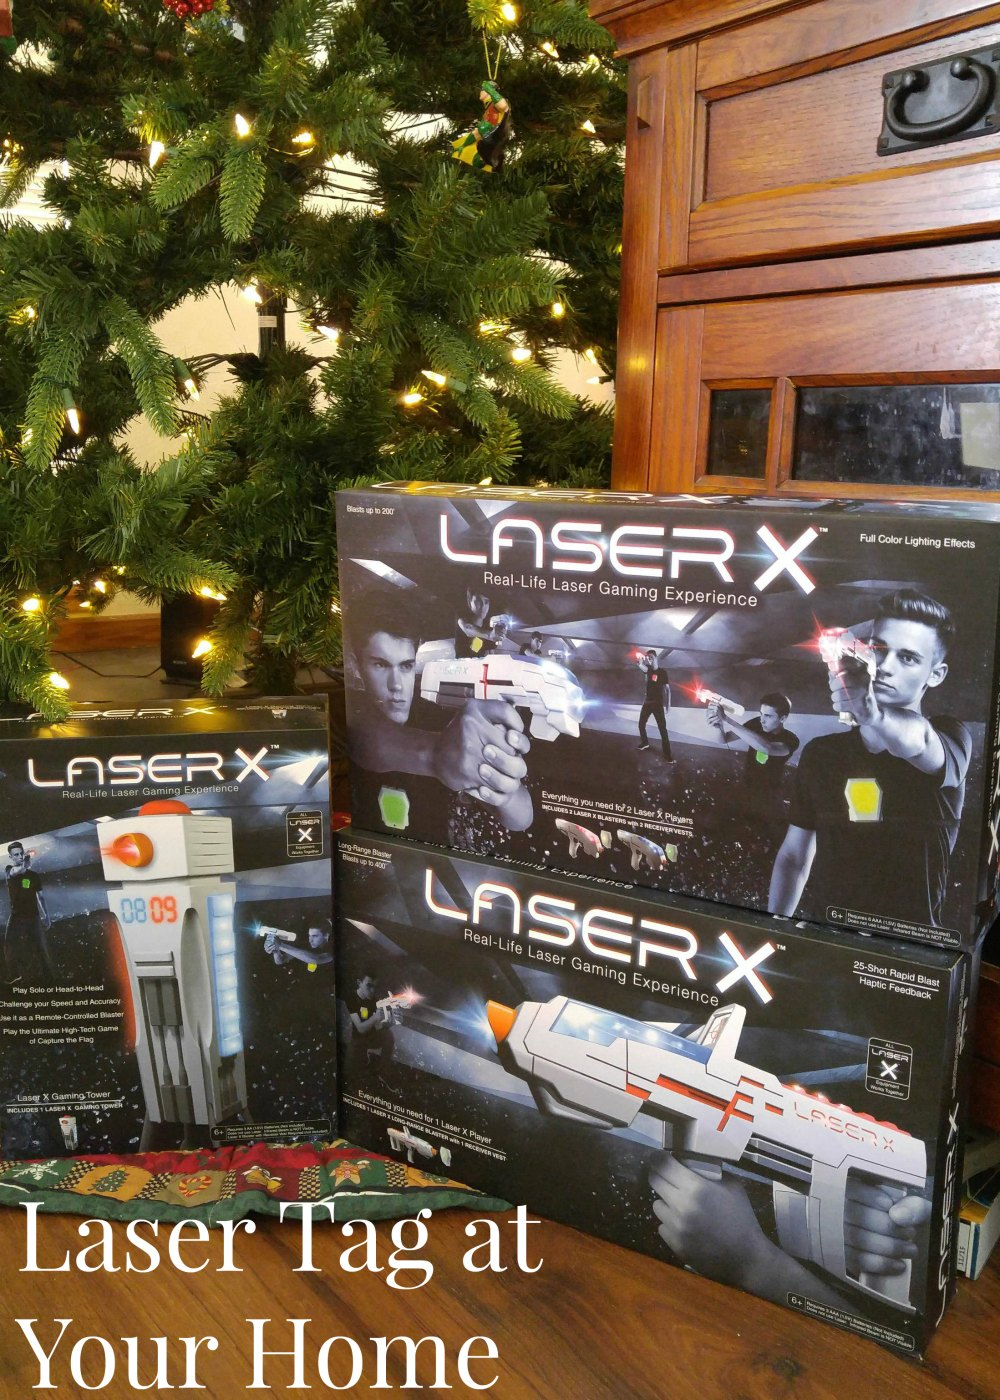 Have kids who love video games? Looking for something that appeals to them while getting everyone up and moving? Check out Laser X's expanded offering which brings the fun of laser tag to your home and beyond. #Ad #LaserX #ActiveKids #LaserTag